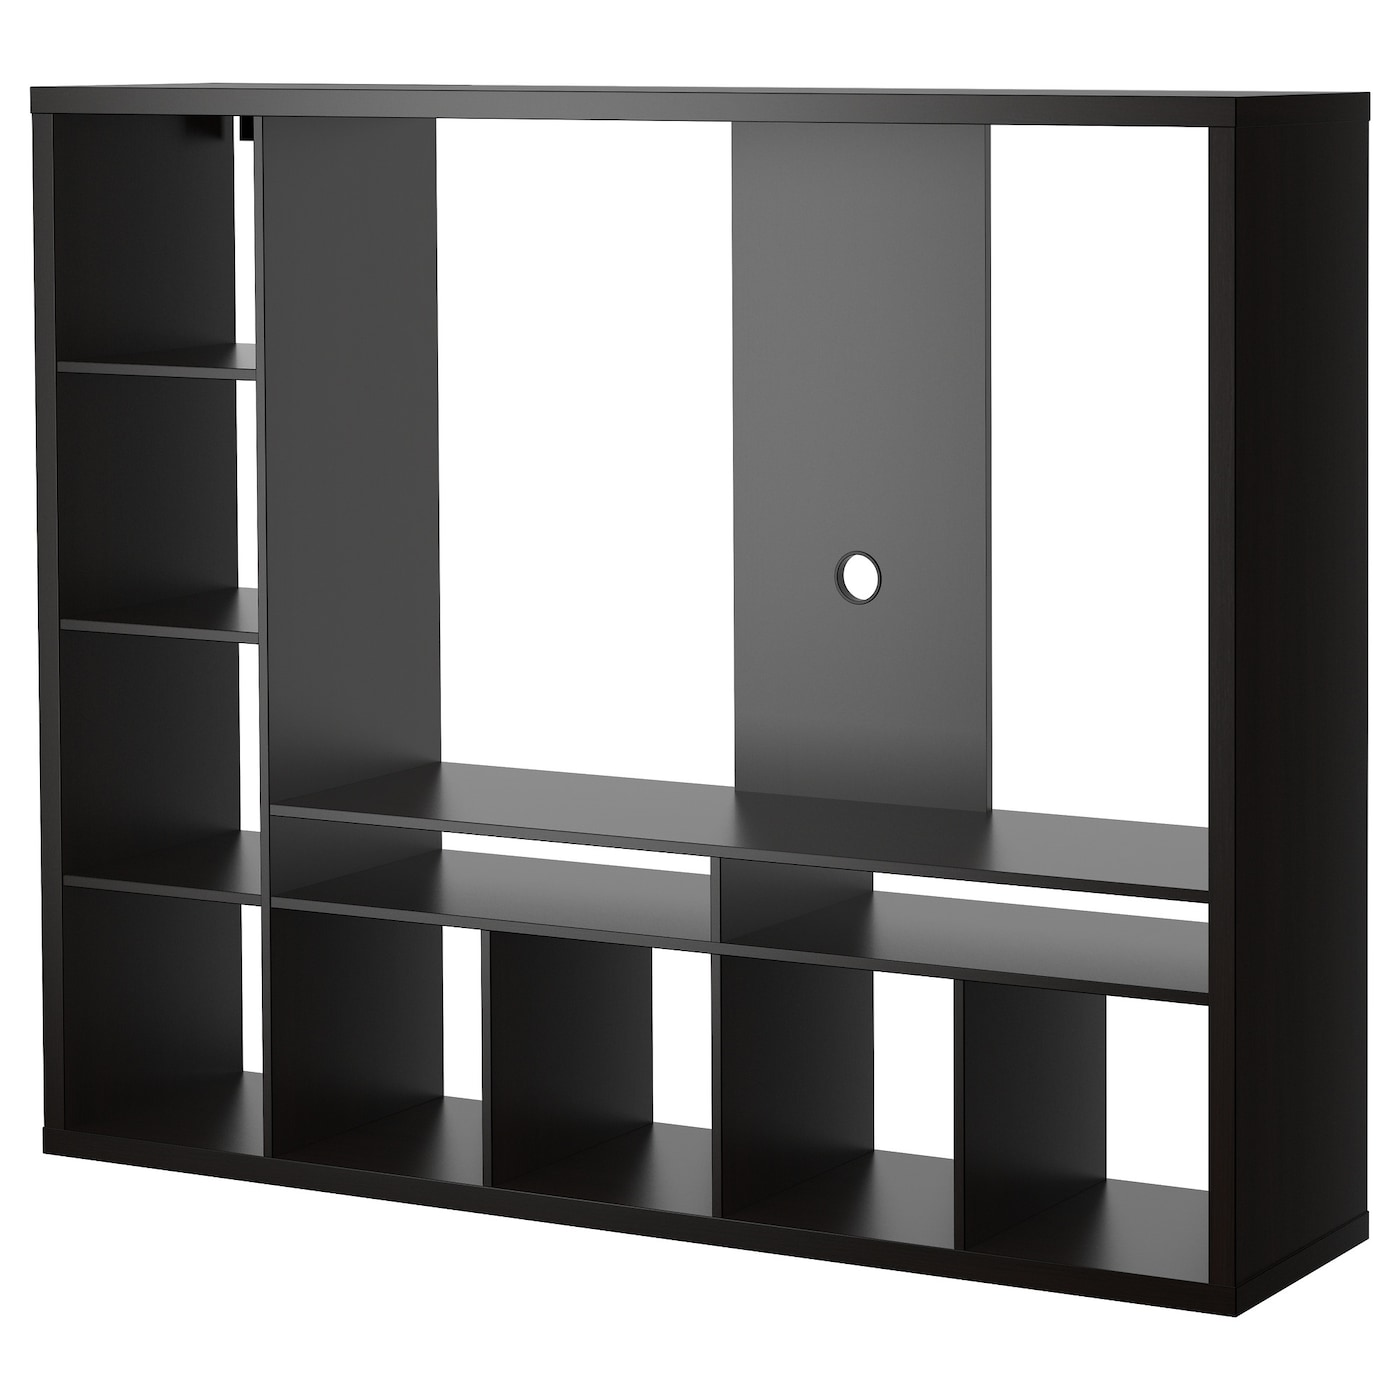 Lappland Tv Storage Unit Black Brown 183×147 Cm Ikea # Meubles Tv Avec Expedit